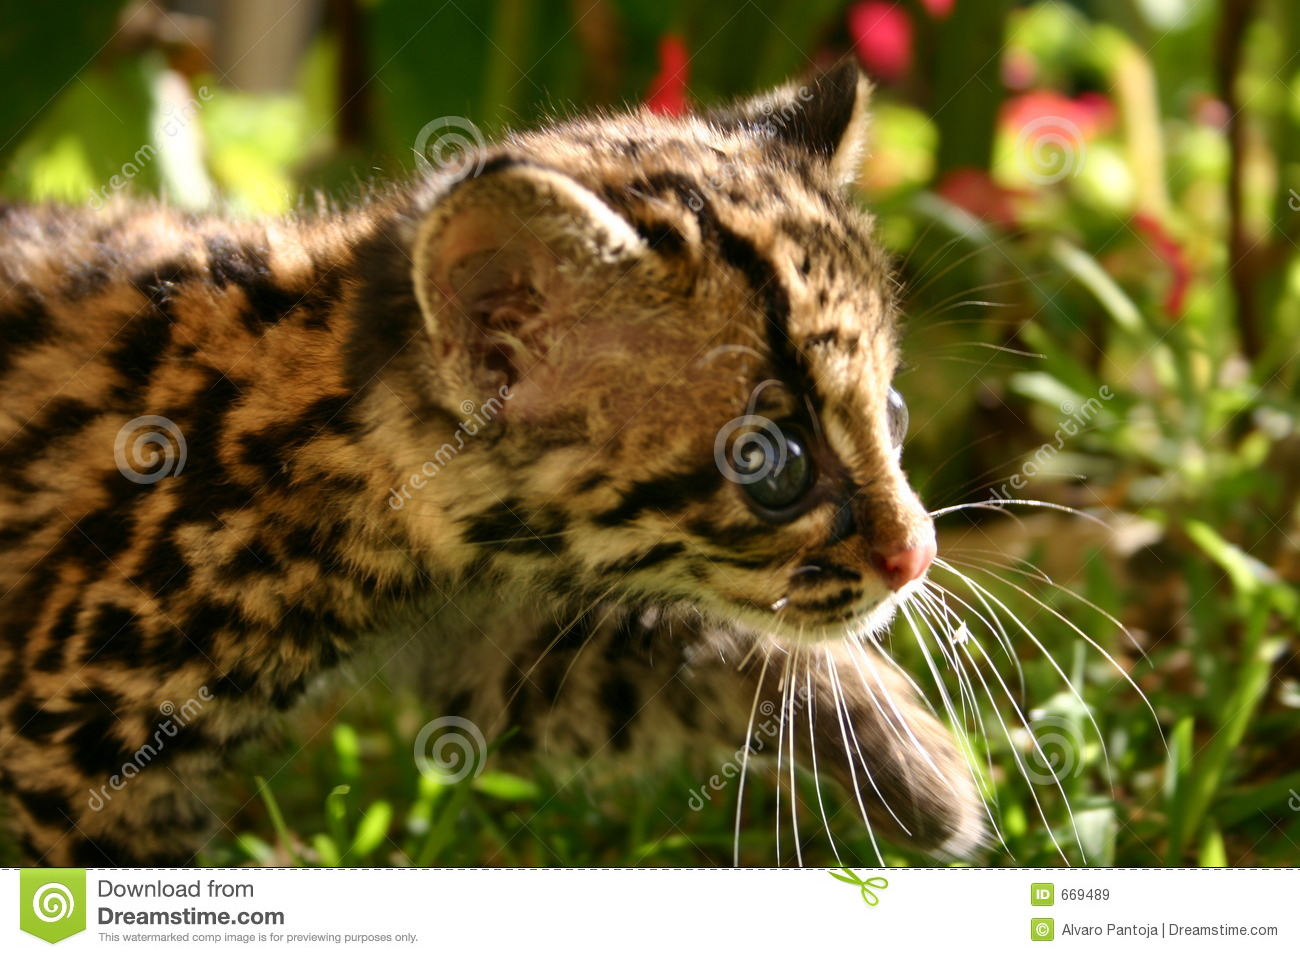 Cute Wallpaper Recycling Baby Margay Royalty Free Stock Images Image 669489